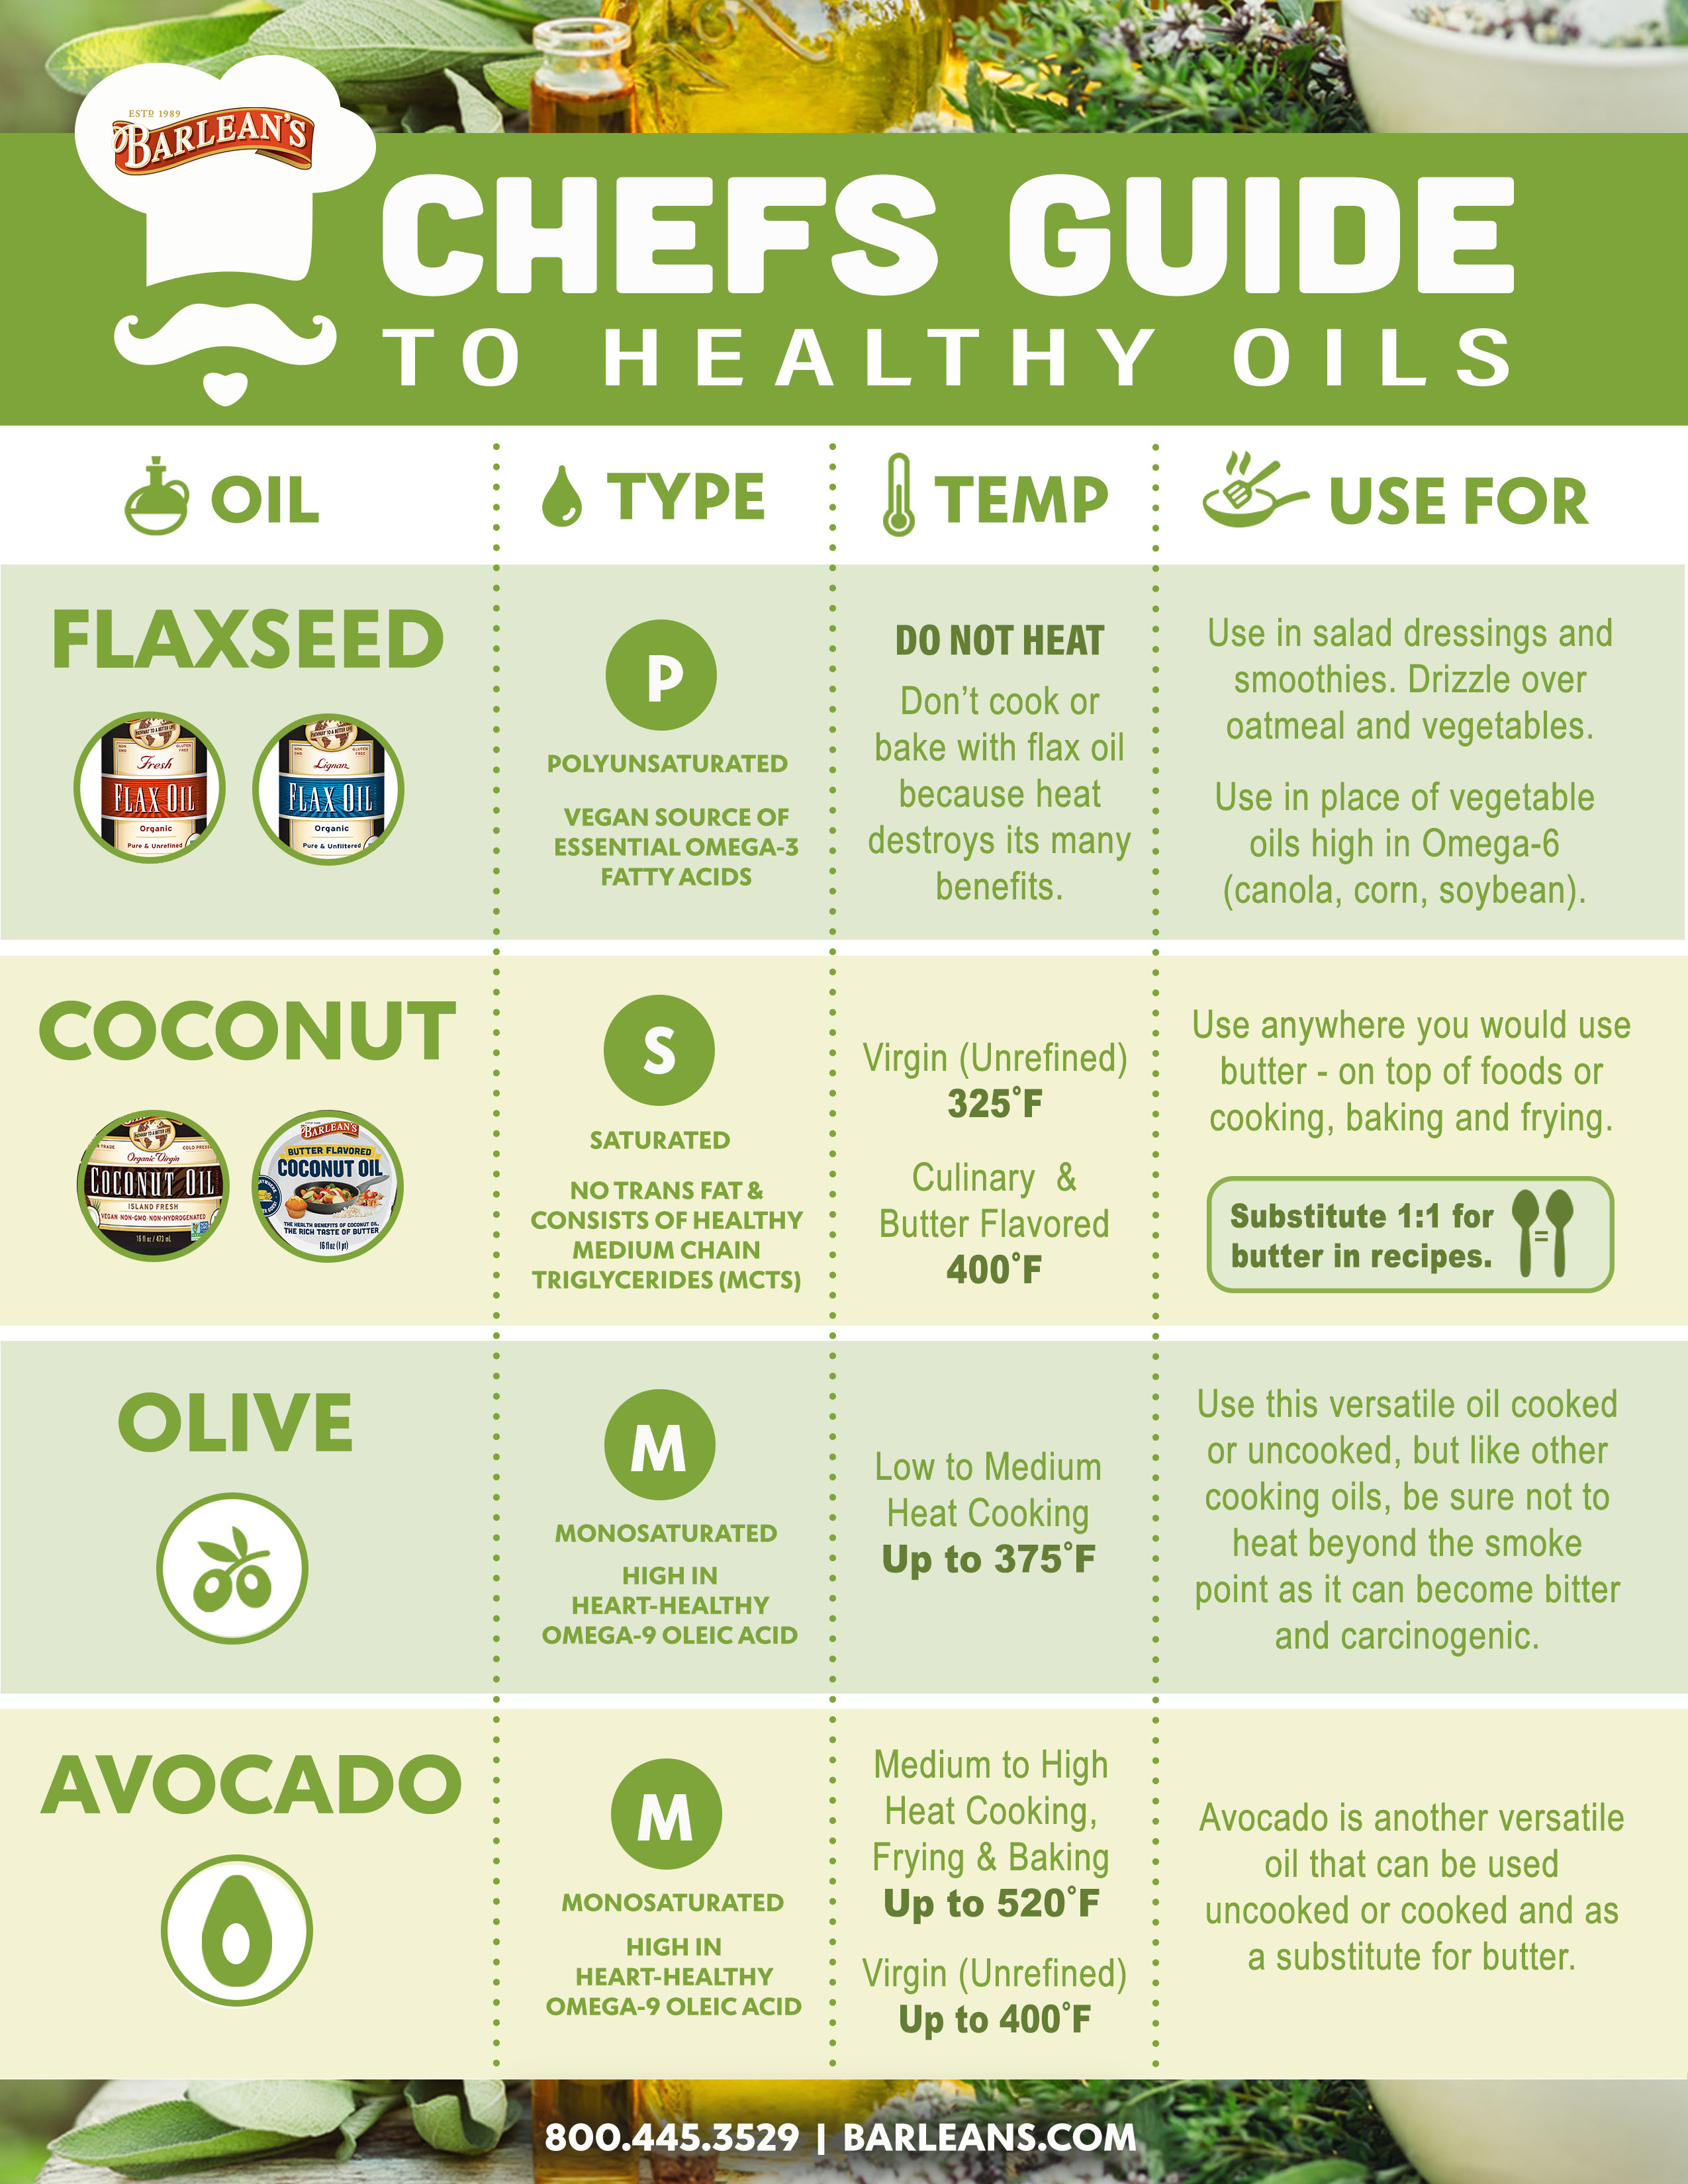 Chefs-Guide-to-Healthy-Oils-1.jpg